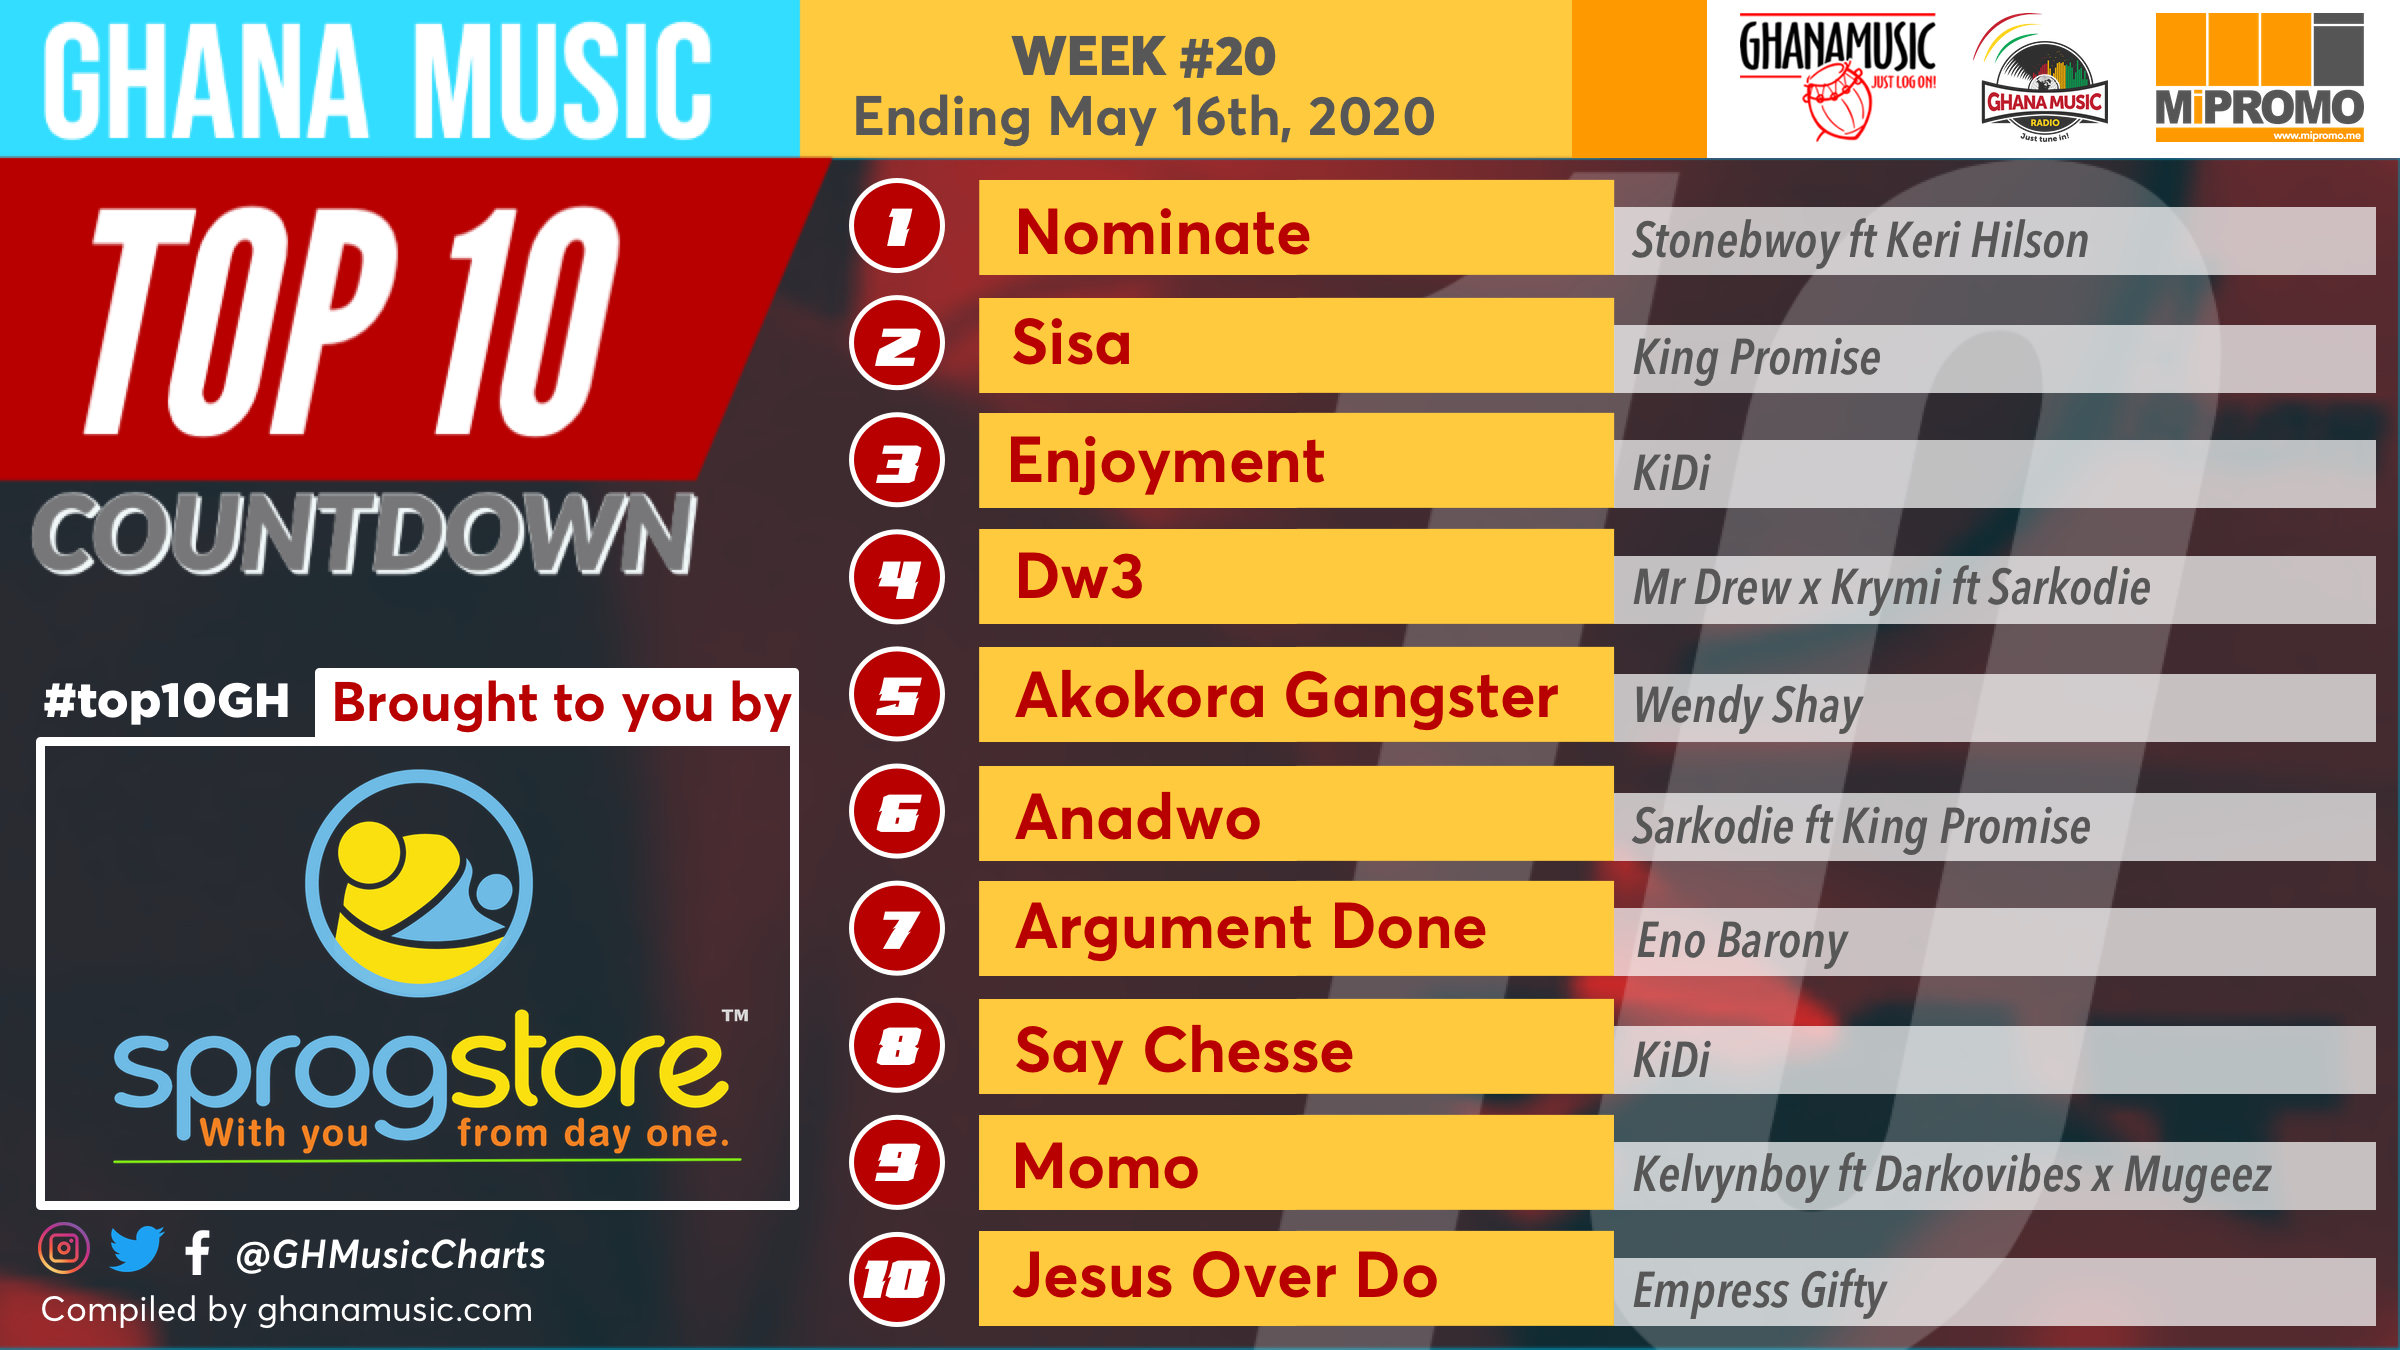 2020 Week 19: Ghana Music Top 10 Countdown